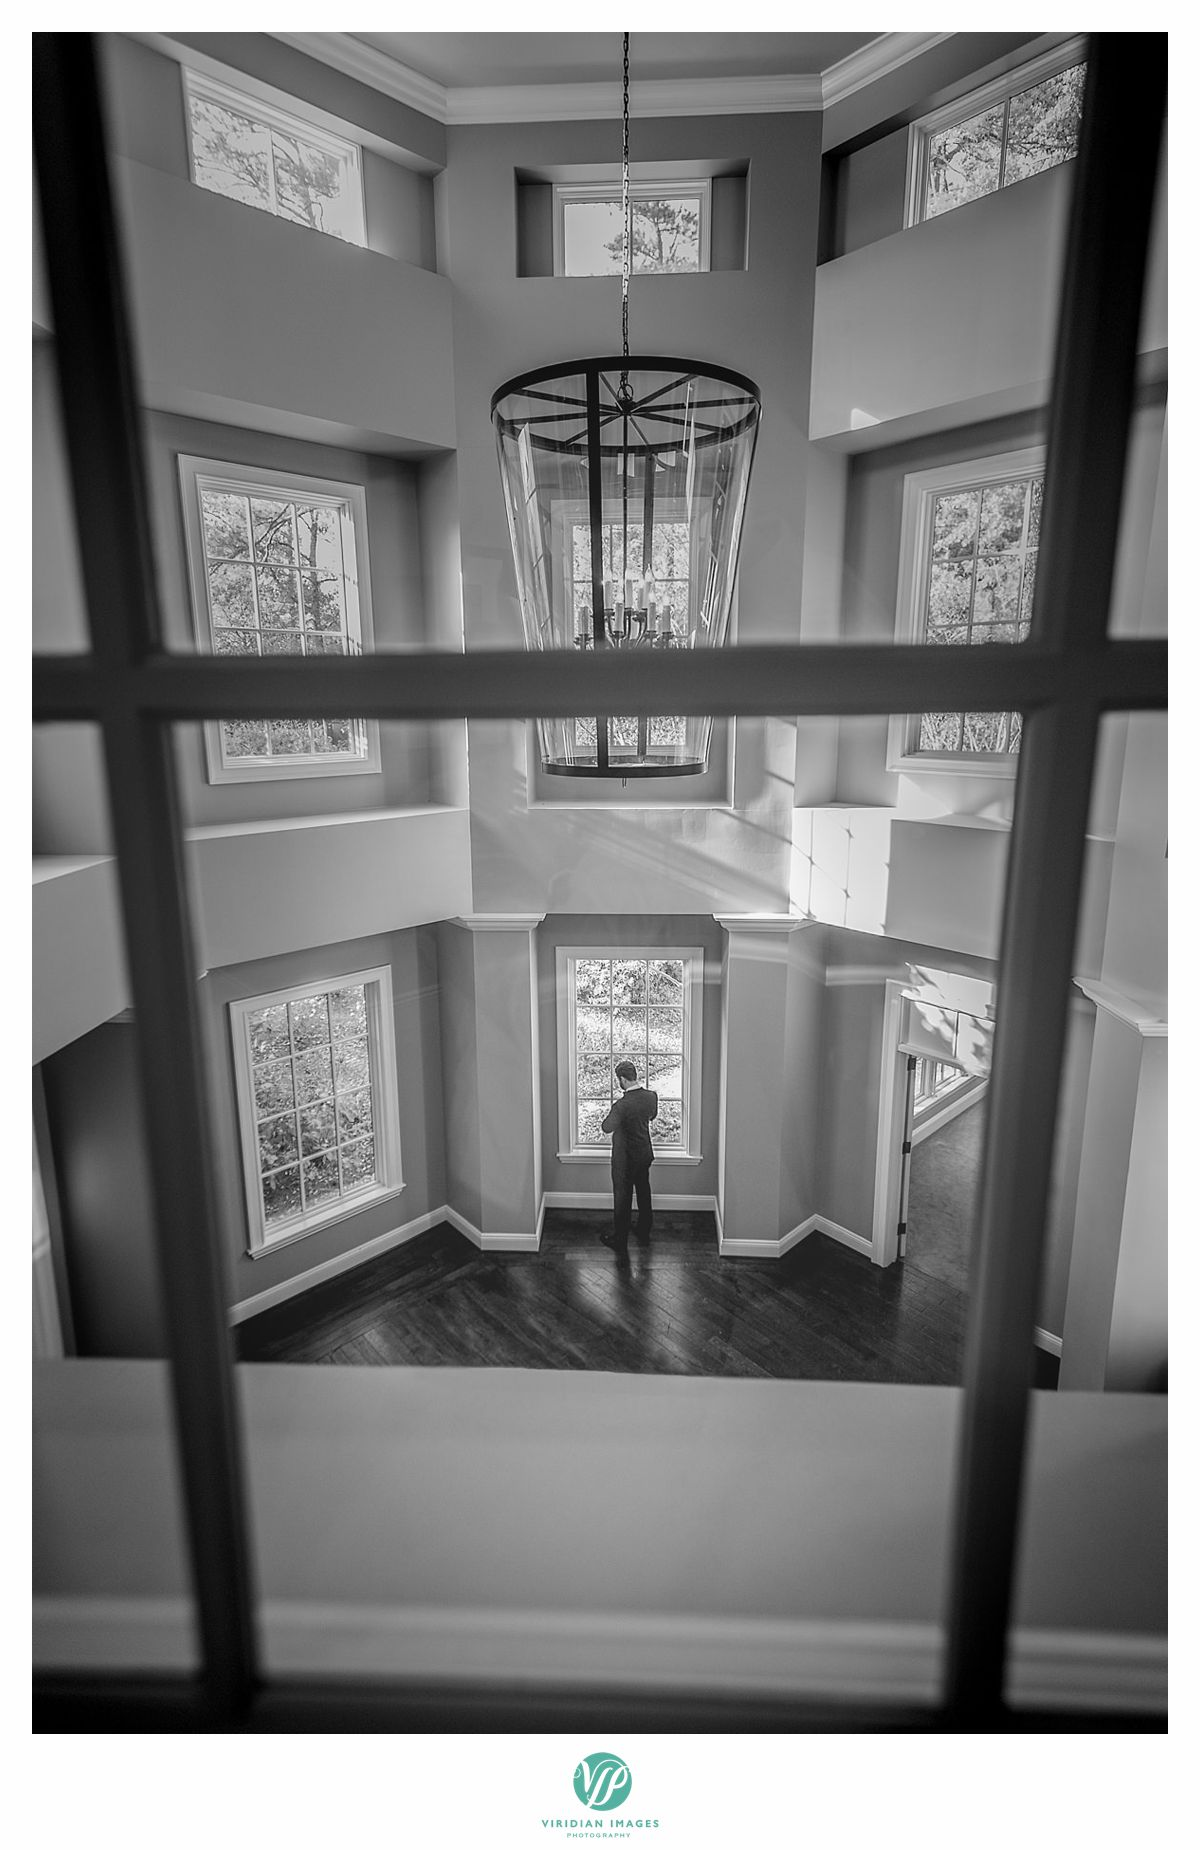 Creative groom portrait through window pane